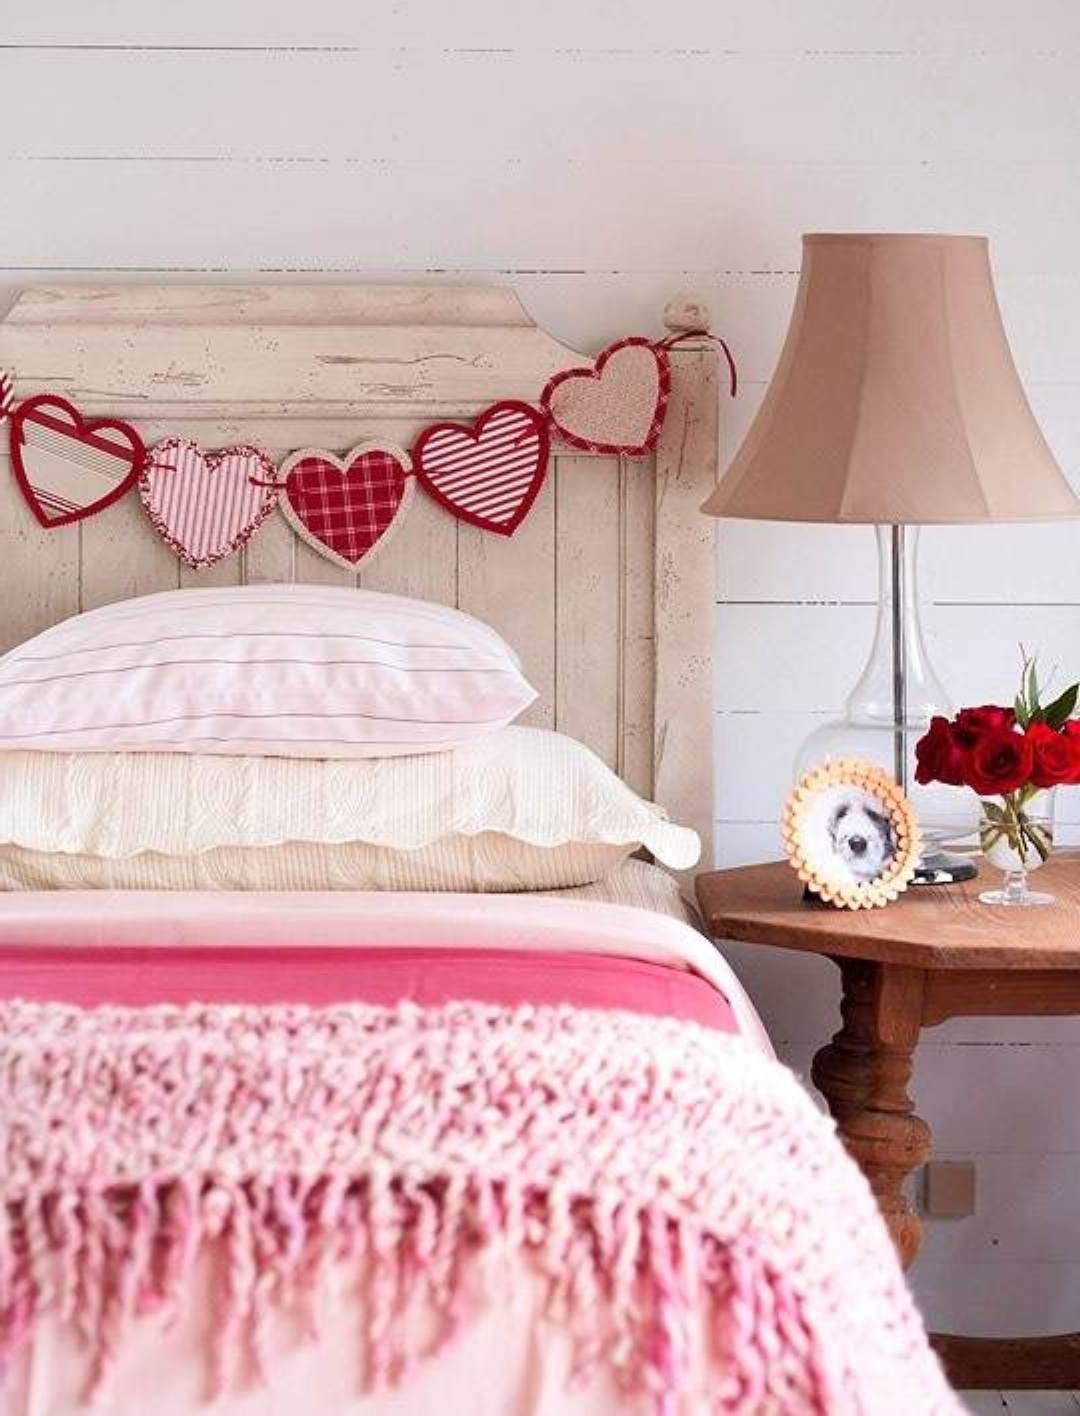 diy bedroom decorating ideas for teens easy diy bedroom decor ideas on budget 8692